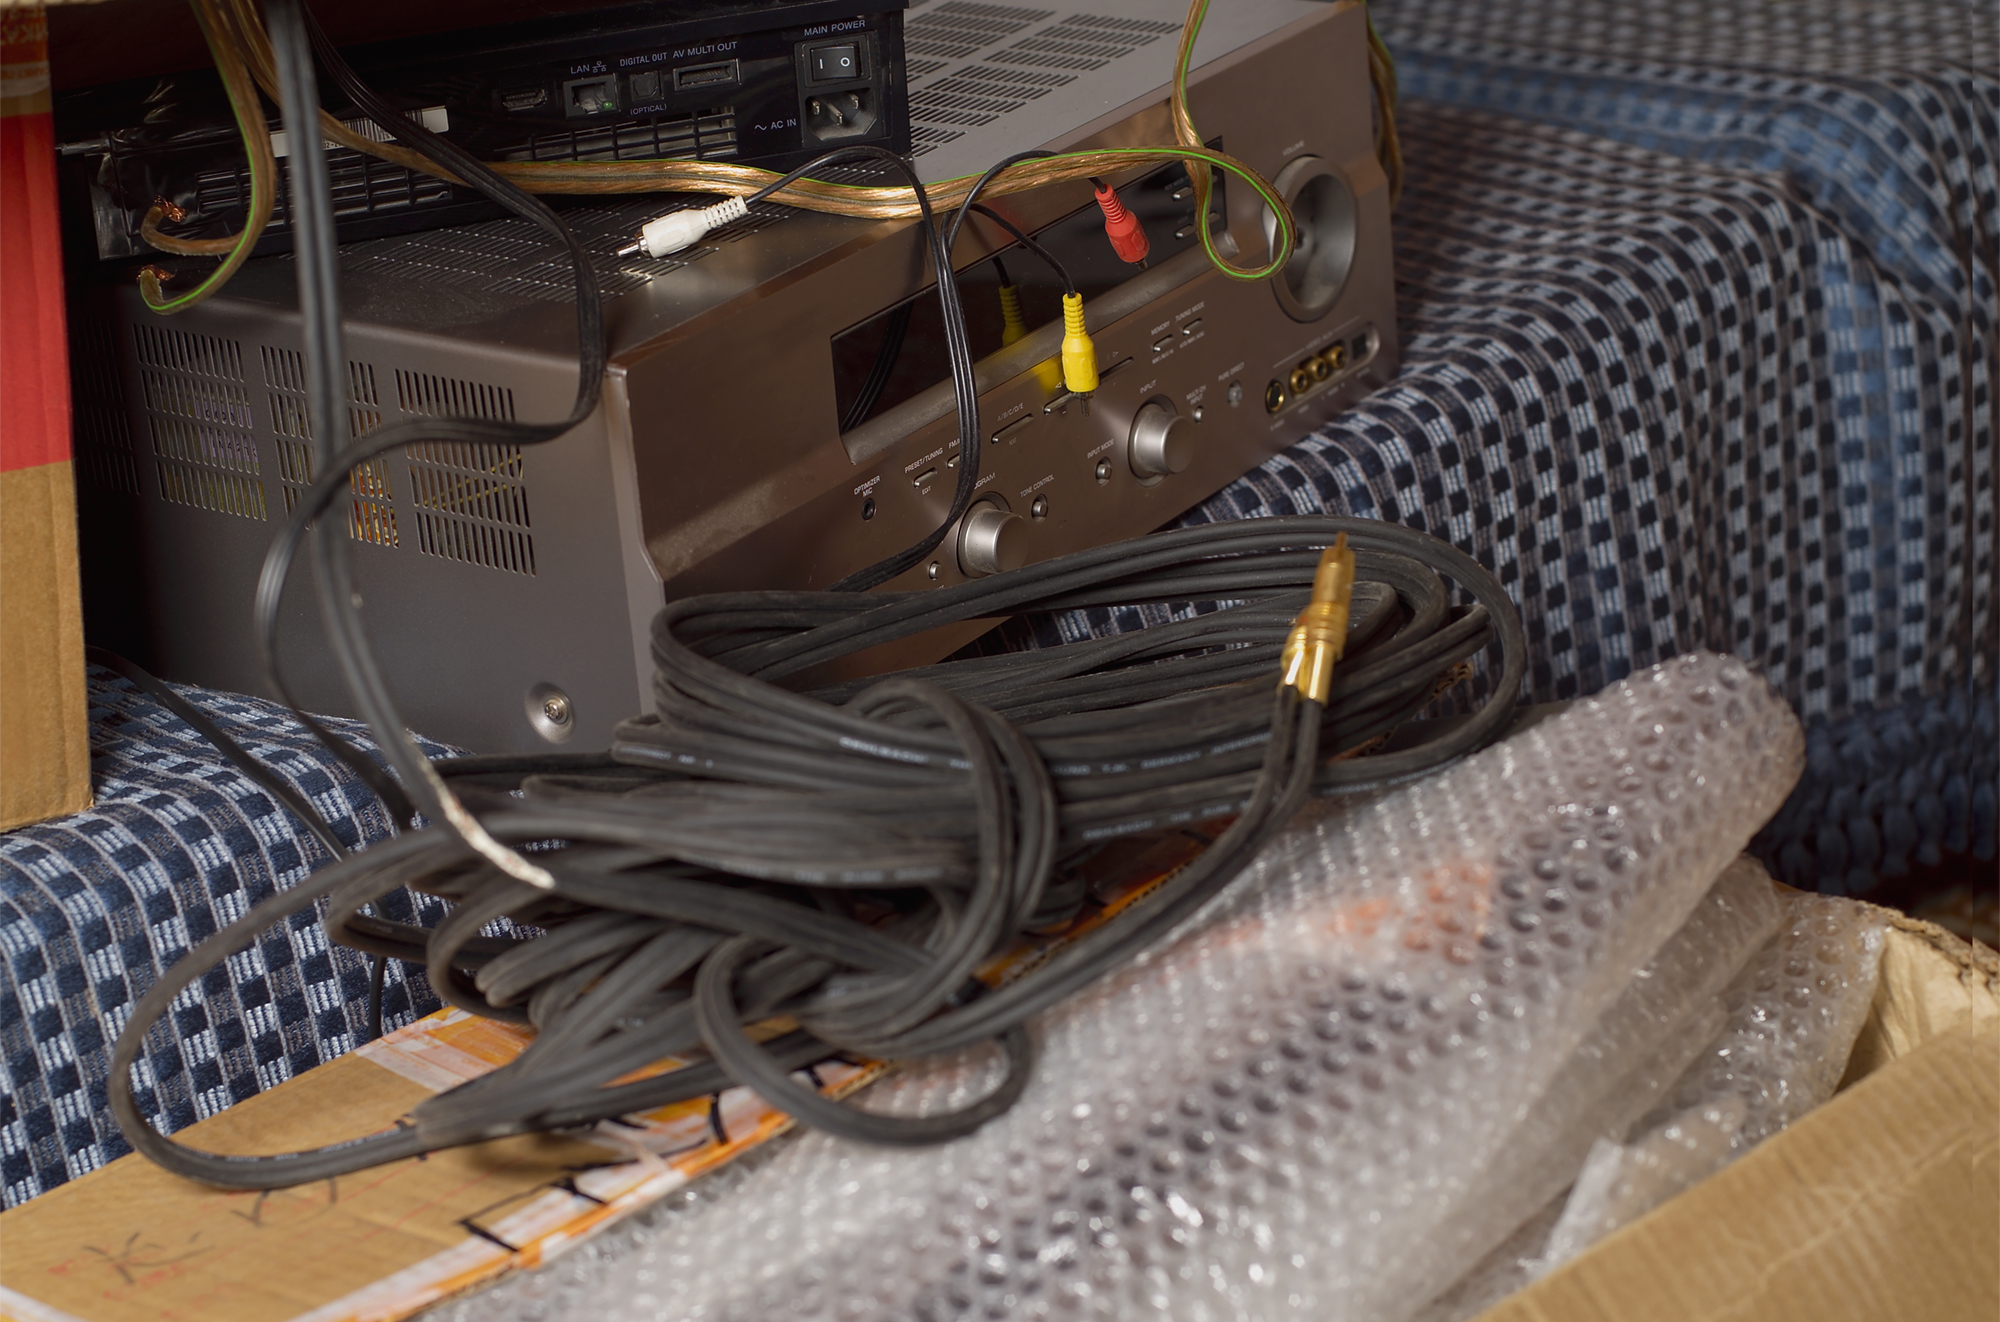 Packing Electronics in Bubble Wrap